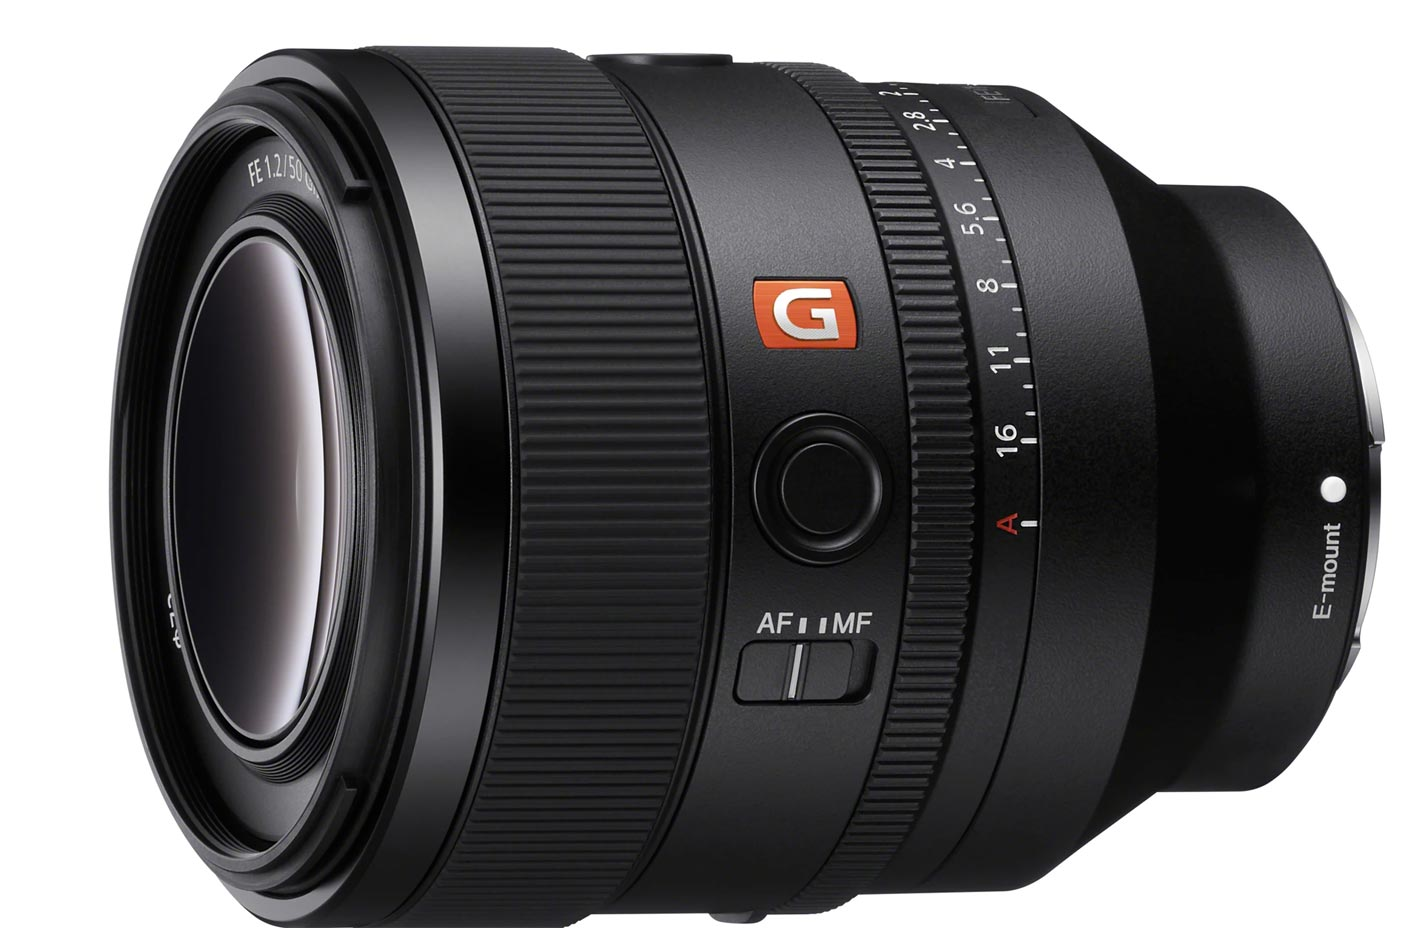 Sony FE 50mm F1.2 G Master: a fast lens for video